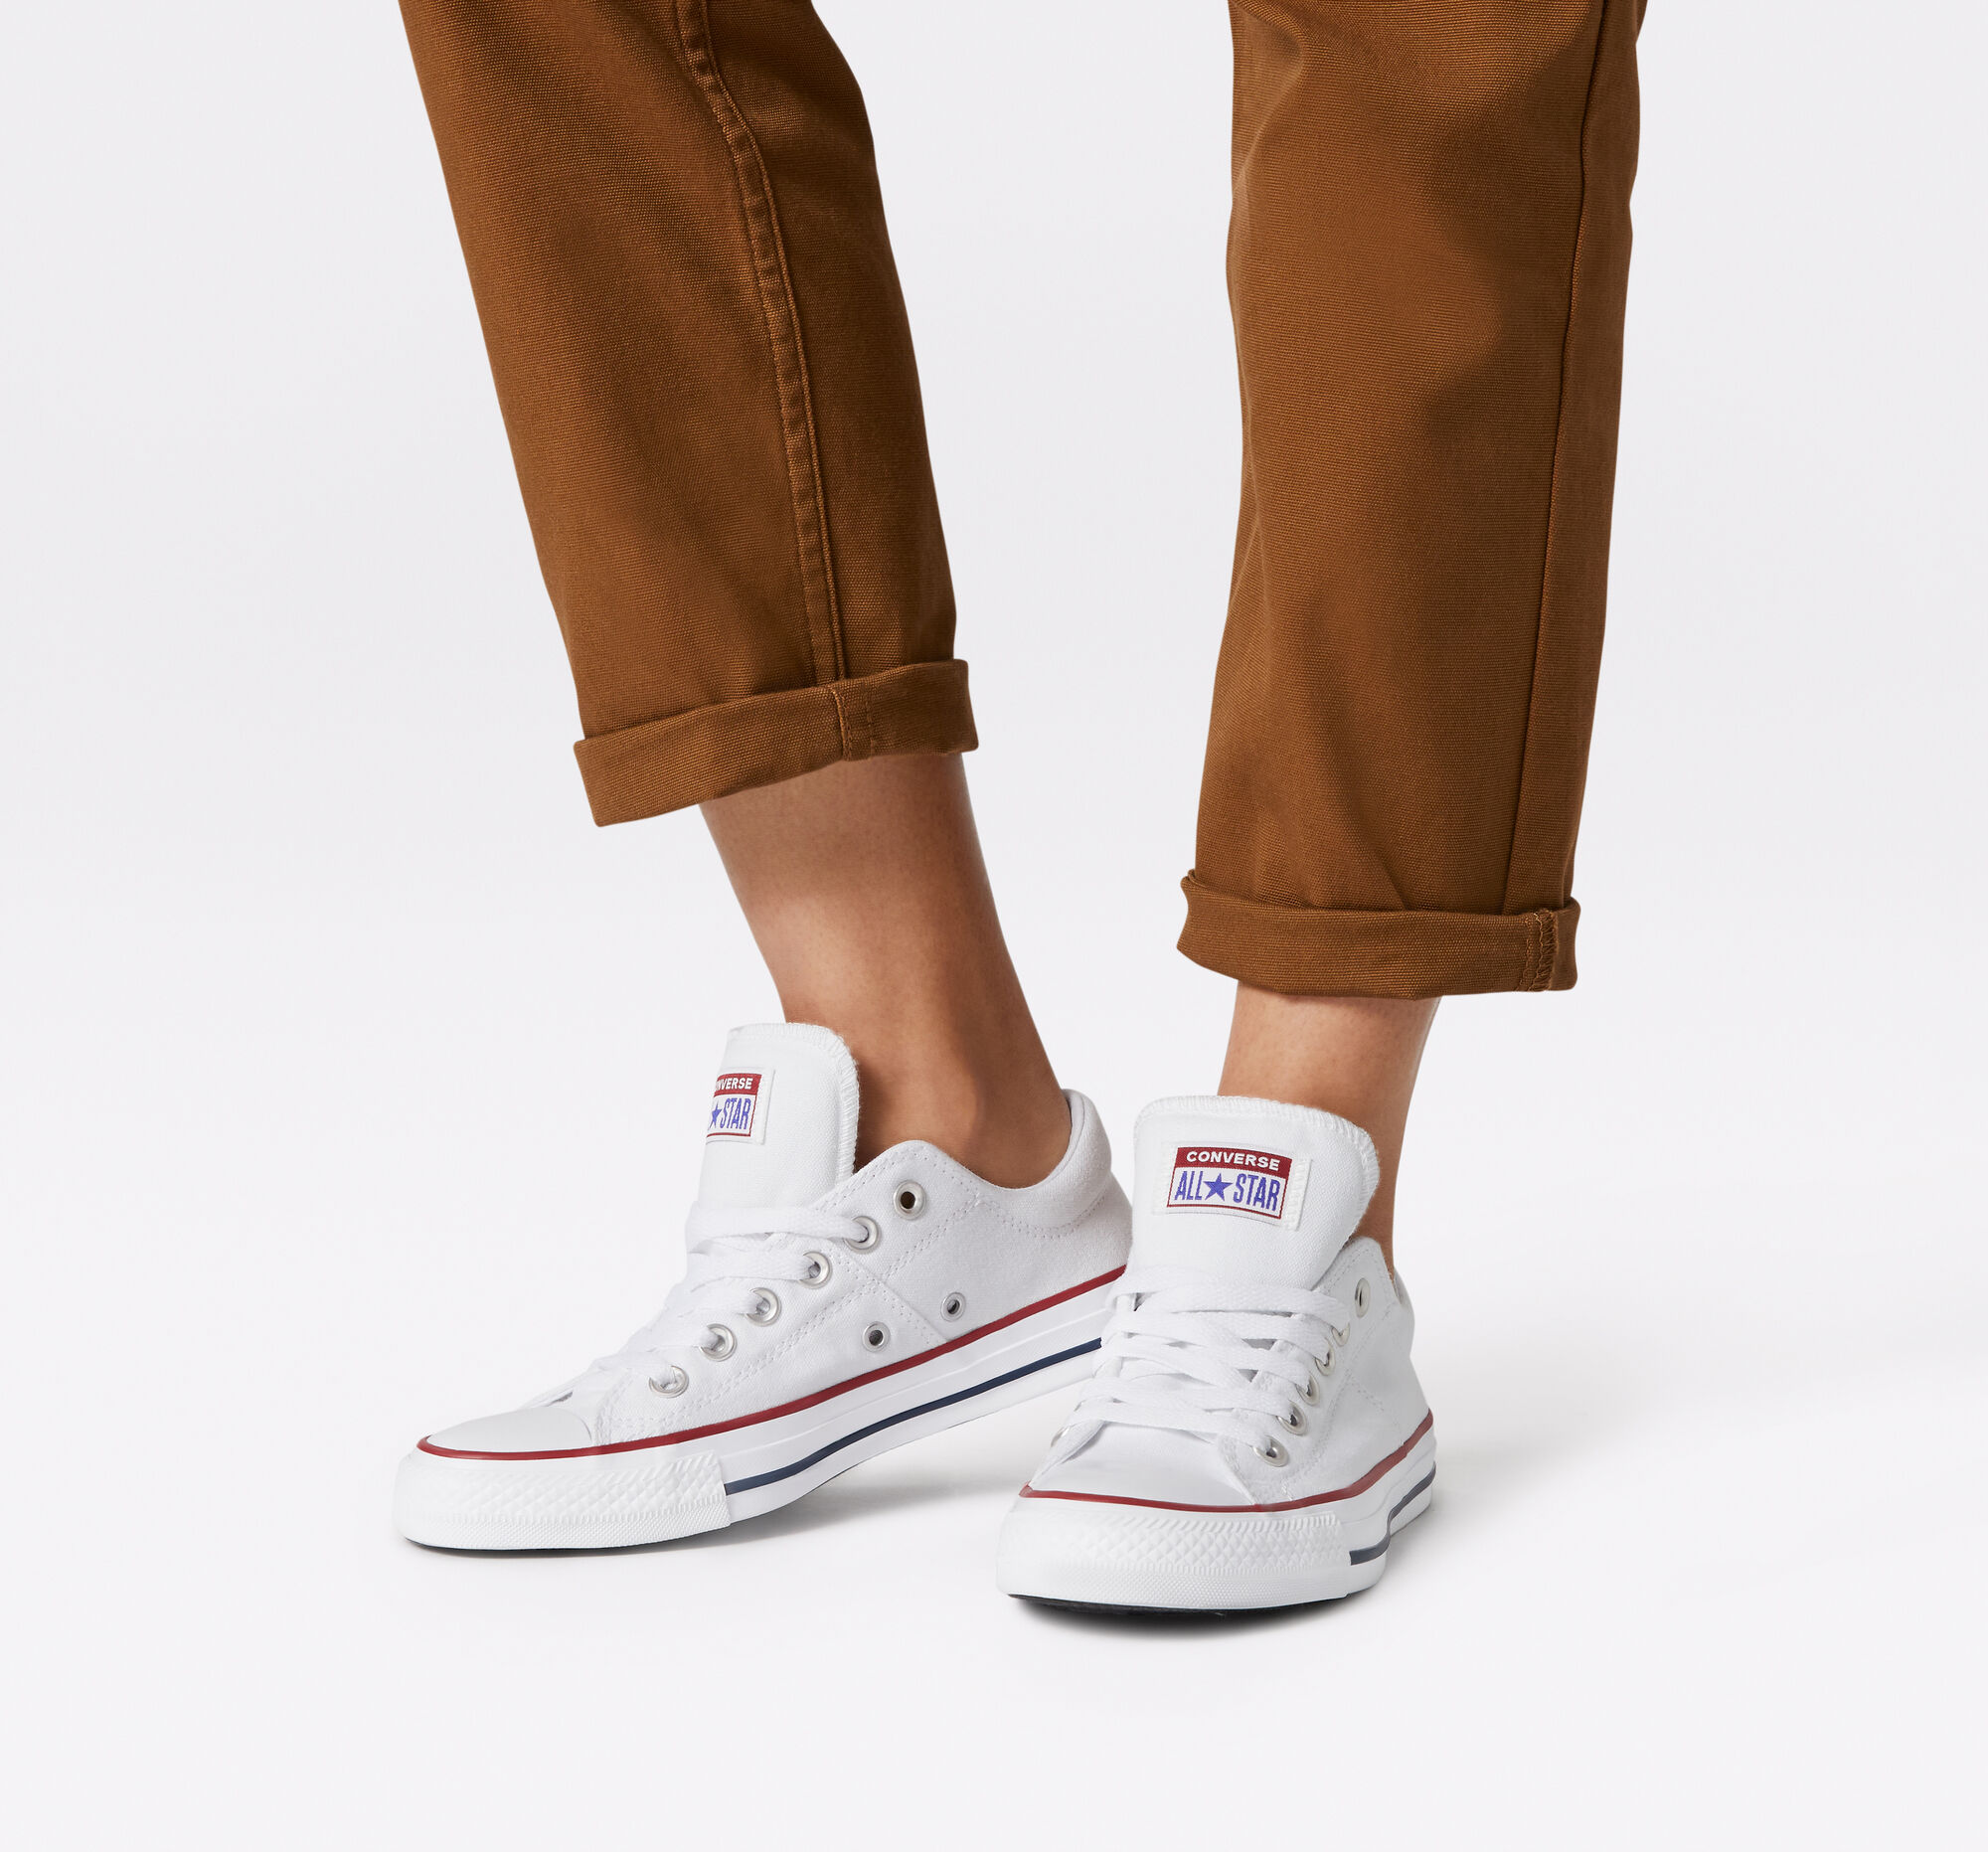 white Chuck Taylor All Star Madison Sneakers summer accessories